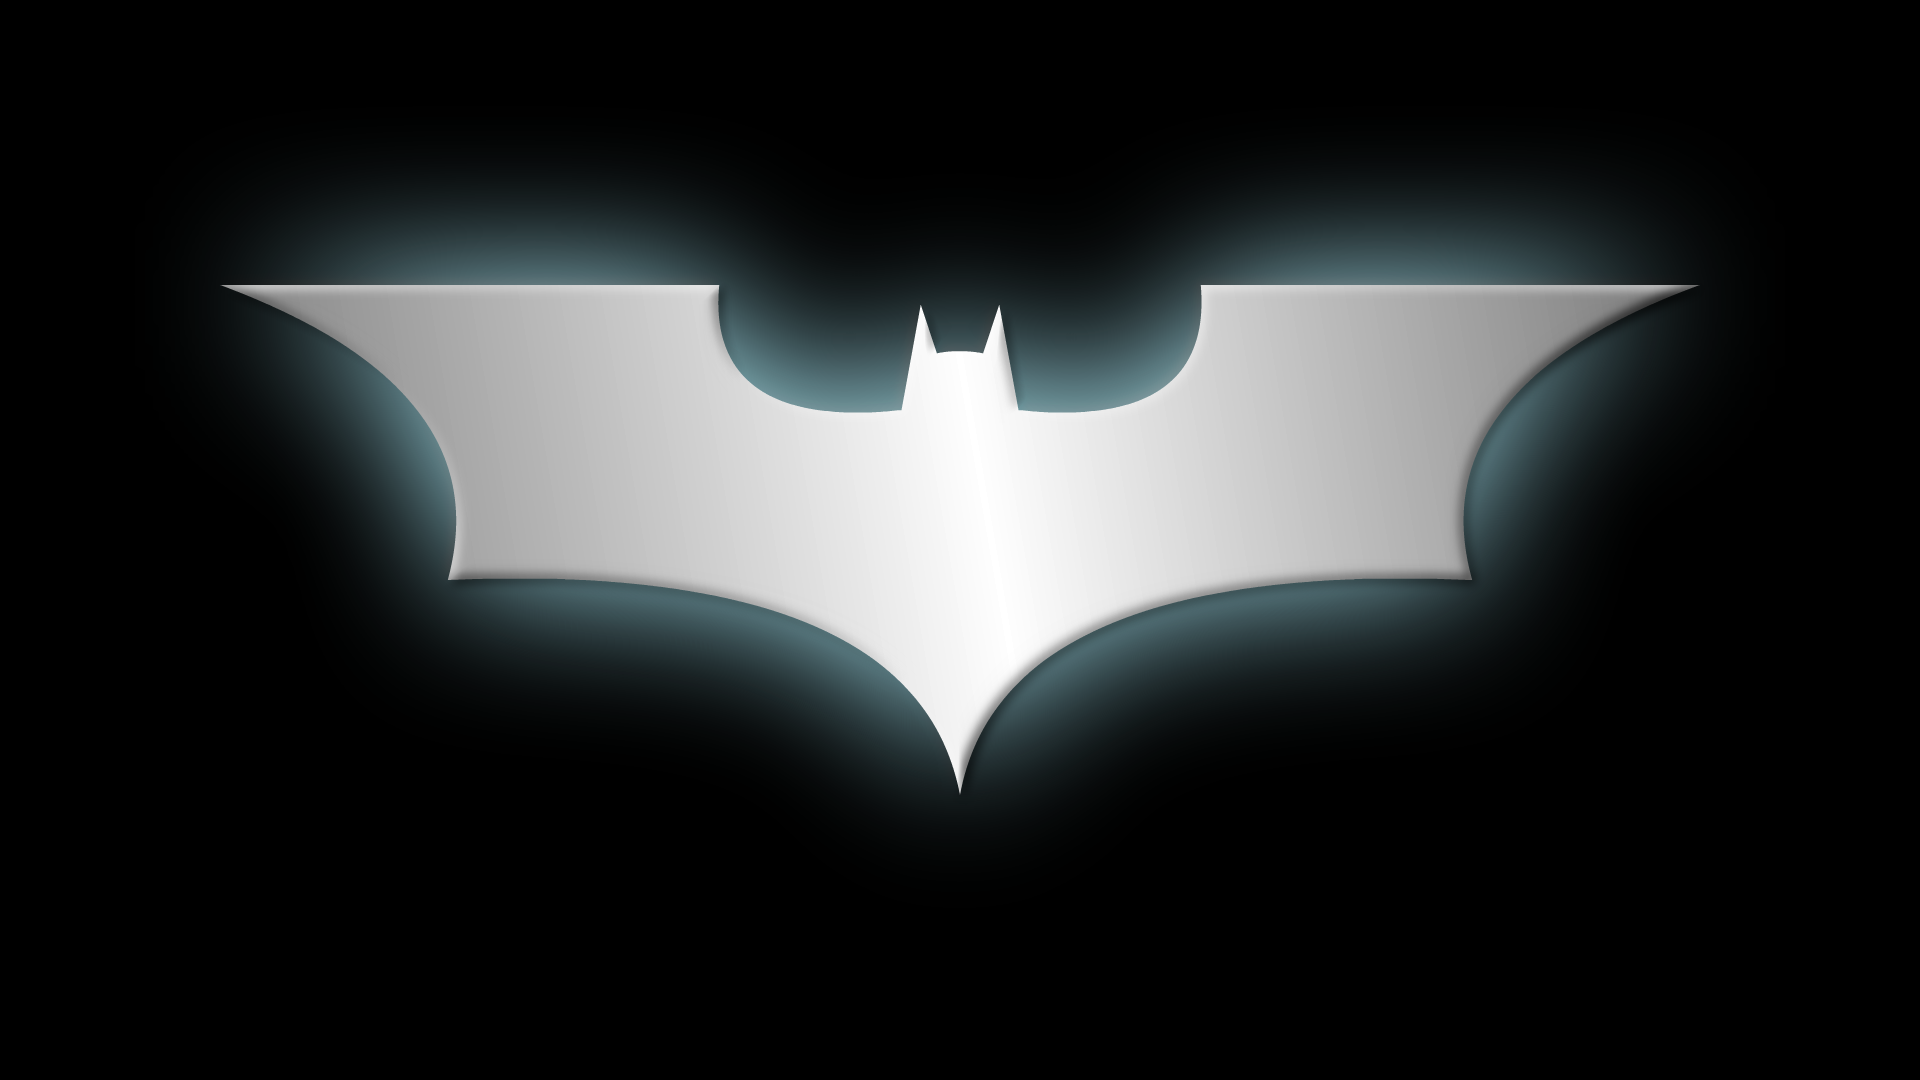 Dark Knight Symbol by Yurtigo on DeviantArt